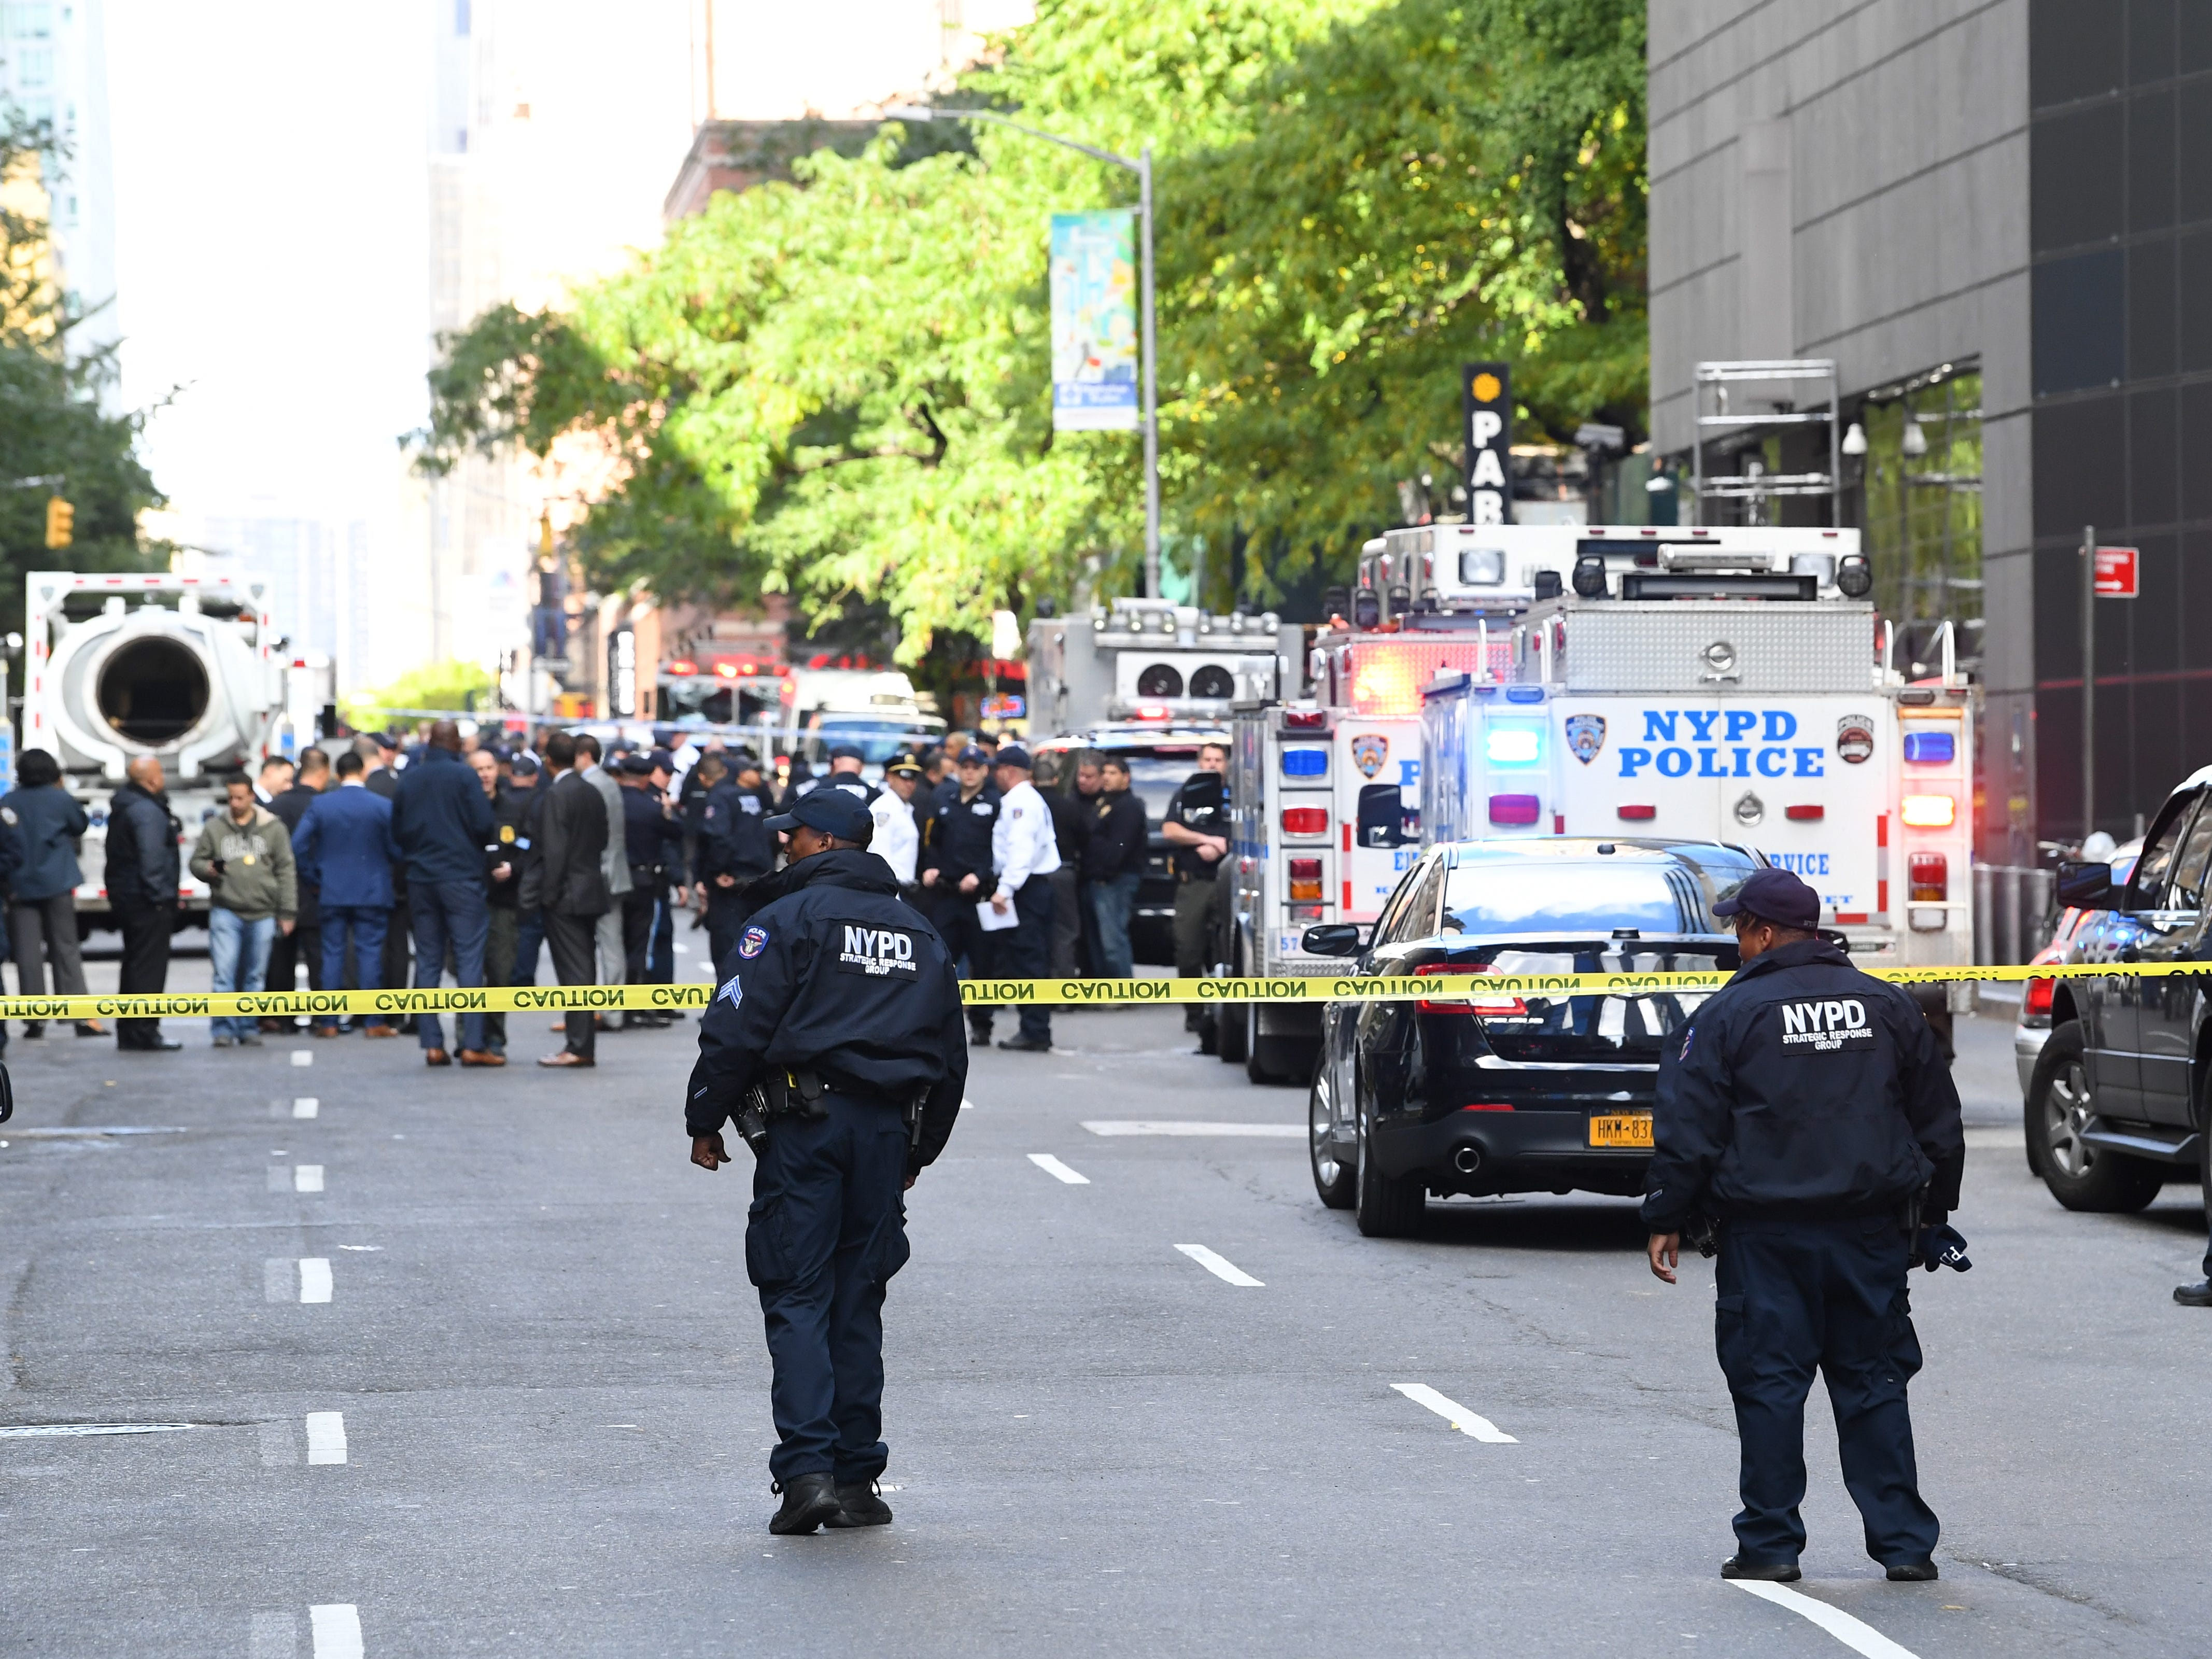 10/24/18 11:06:24 AM -- New York, NY, U.S.A  -- Scene at Columbus Circle (west 58th street) where a suspicious package was discovered at CNN's NYC location.    Photo by Robert Deutsch, USA TODAY staff ORG XMIT:  RD xxxxx CNN Bomb 10_24_2018 (Via OlyDrop)